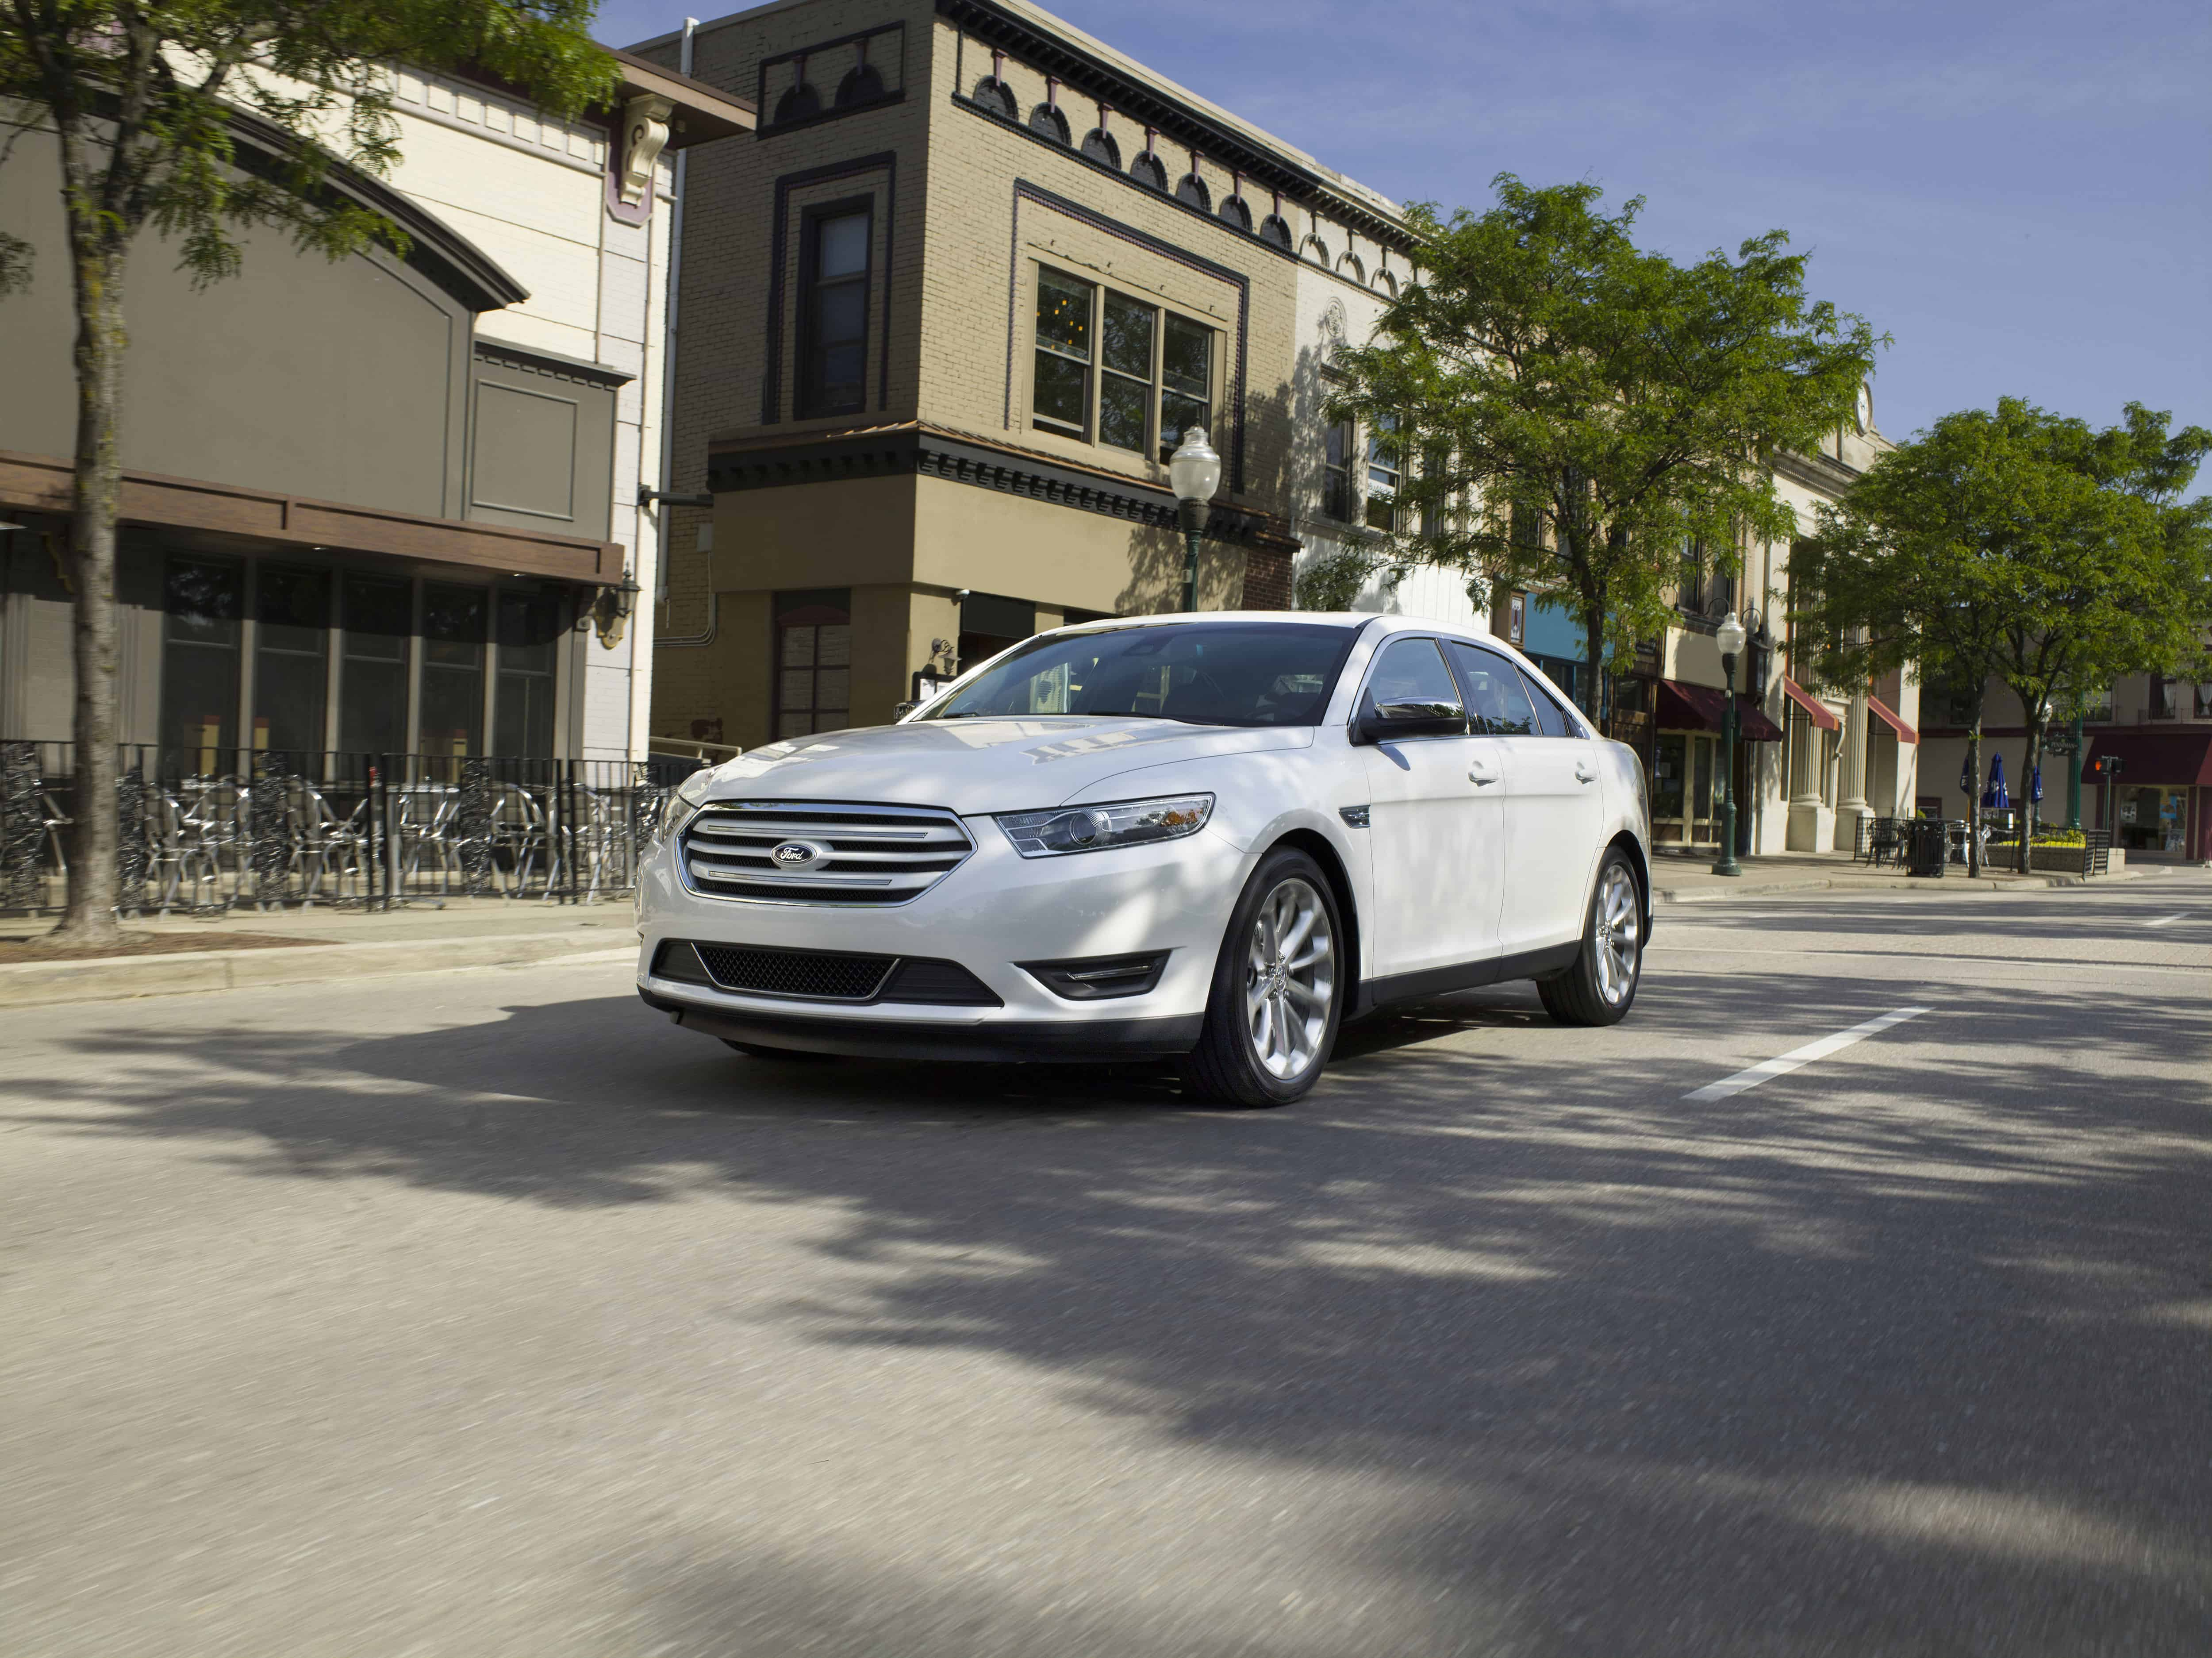 Best Long Lasting Cars - Ford Taurus